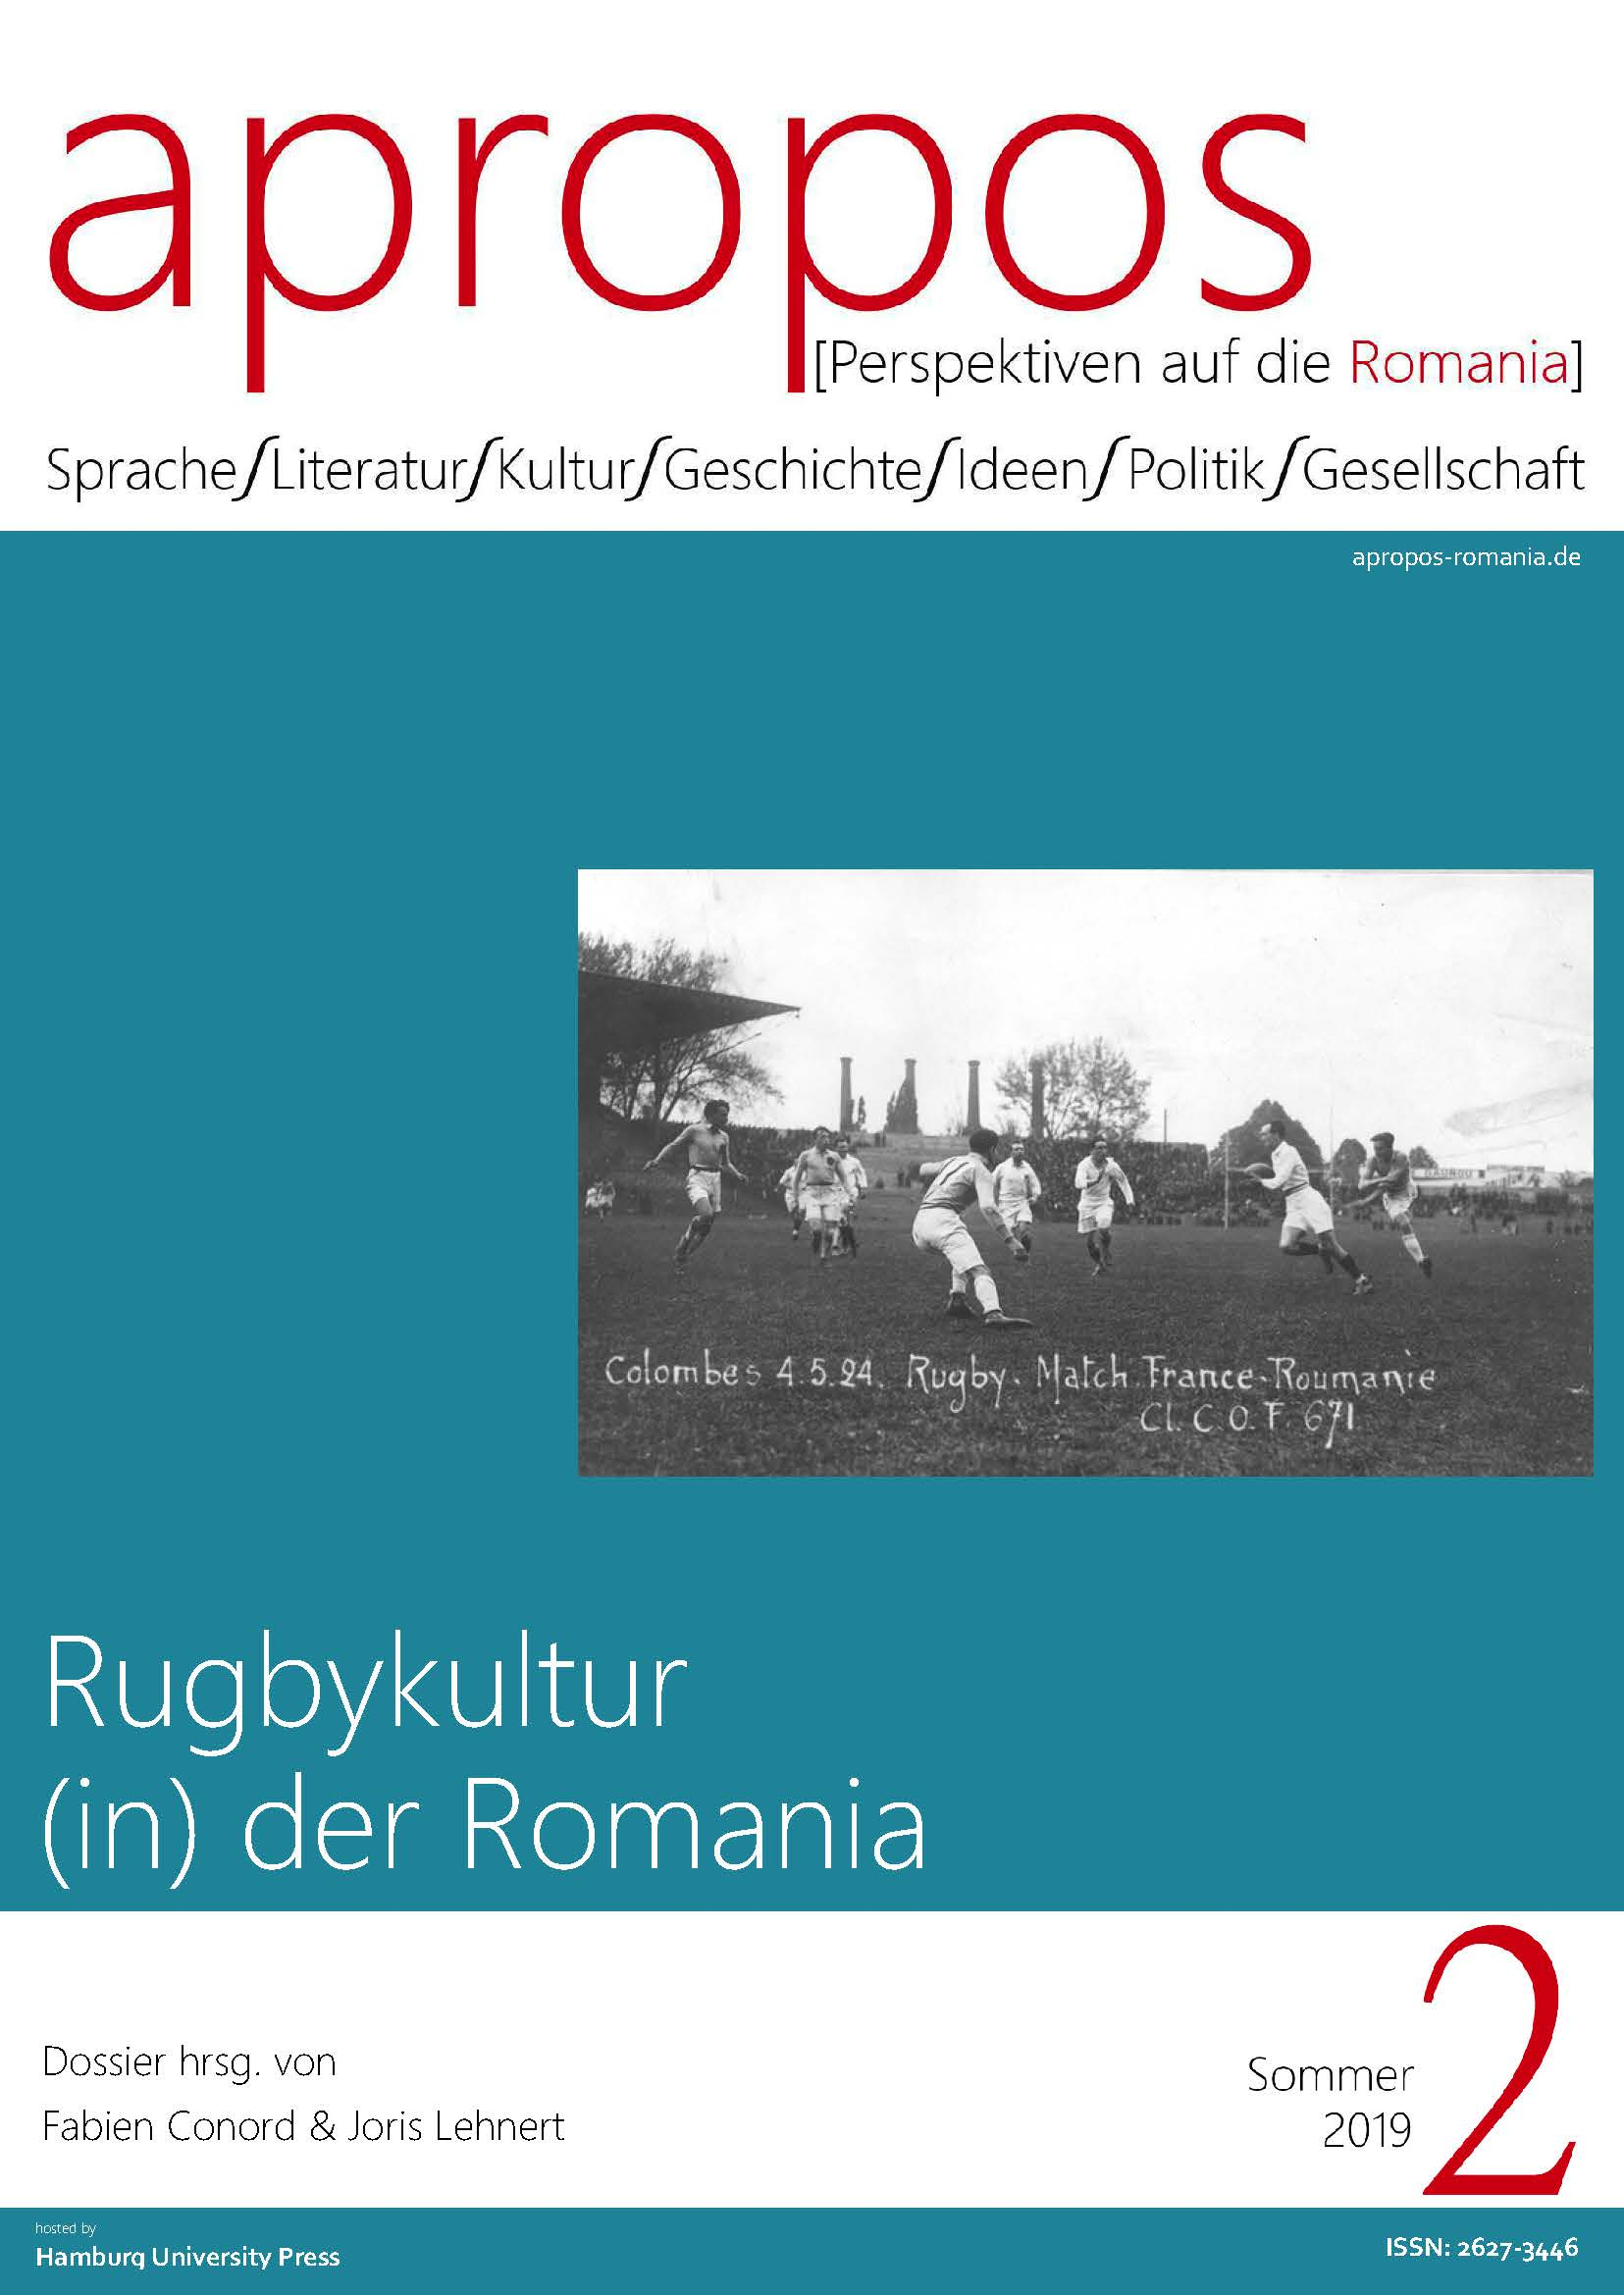 View Nr. 2 (2019): Rugbykultur (in) der Romania